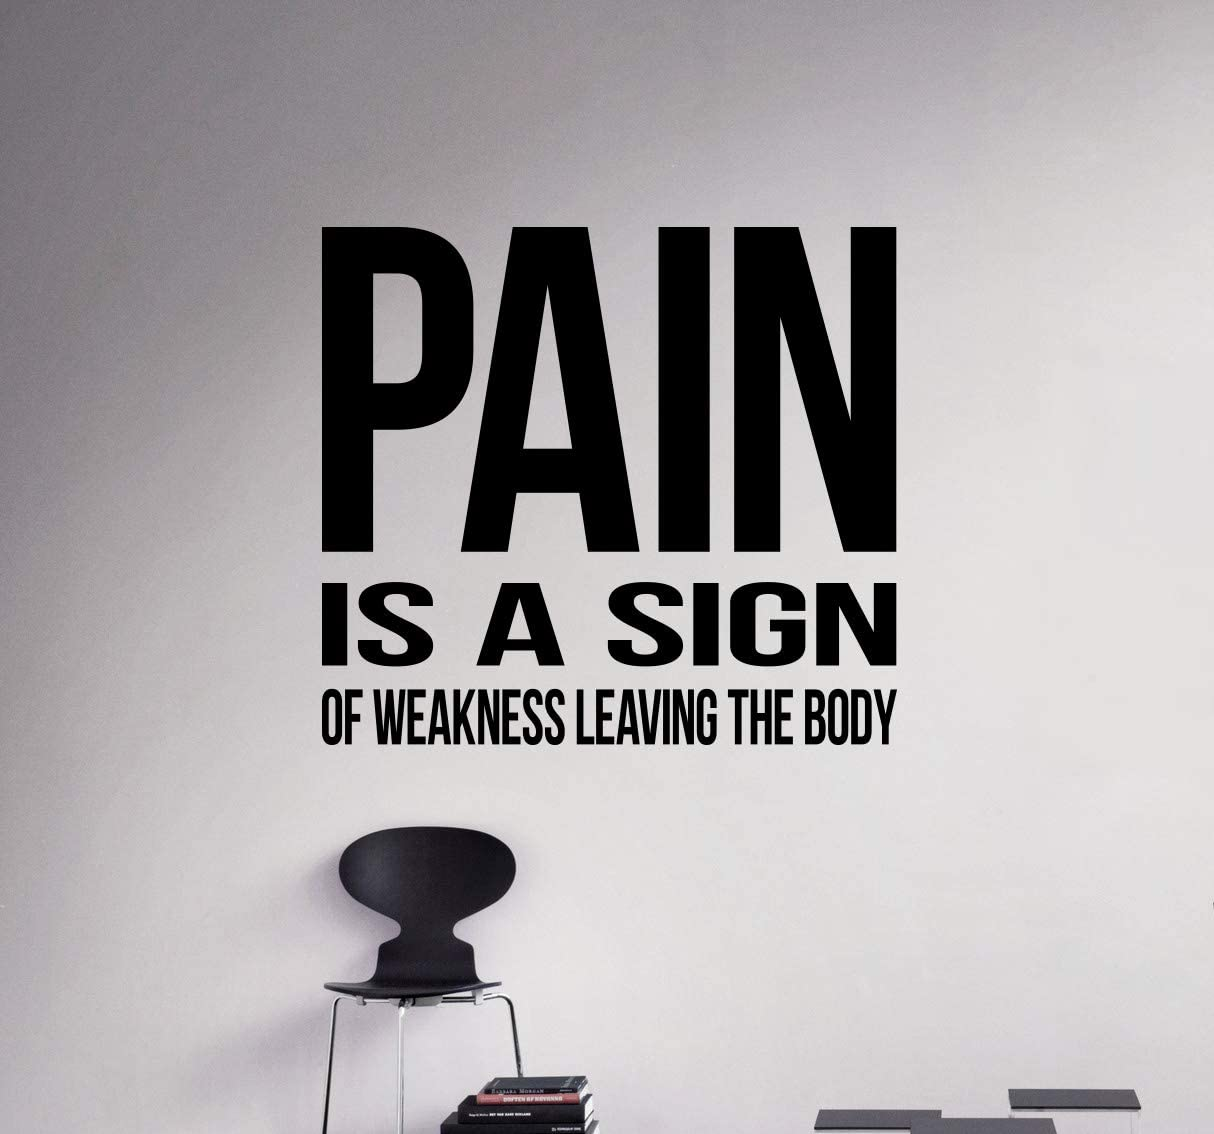 Pain Is A Sign Wall Decal Vinyl Sticker Workout Motivational Quotes Home Art Decor 32 Nwg Amazon Com